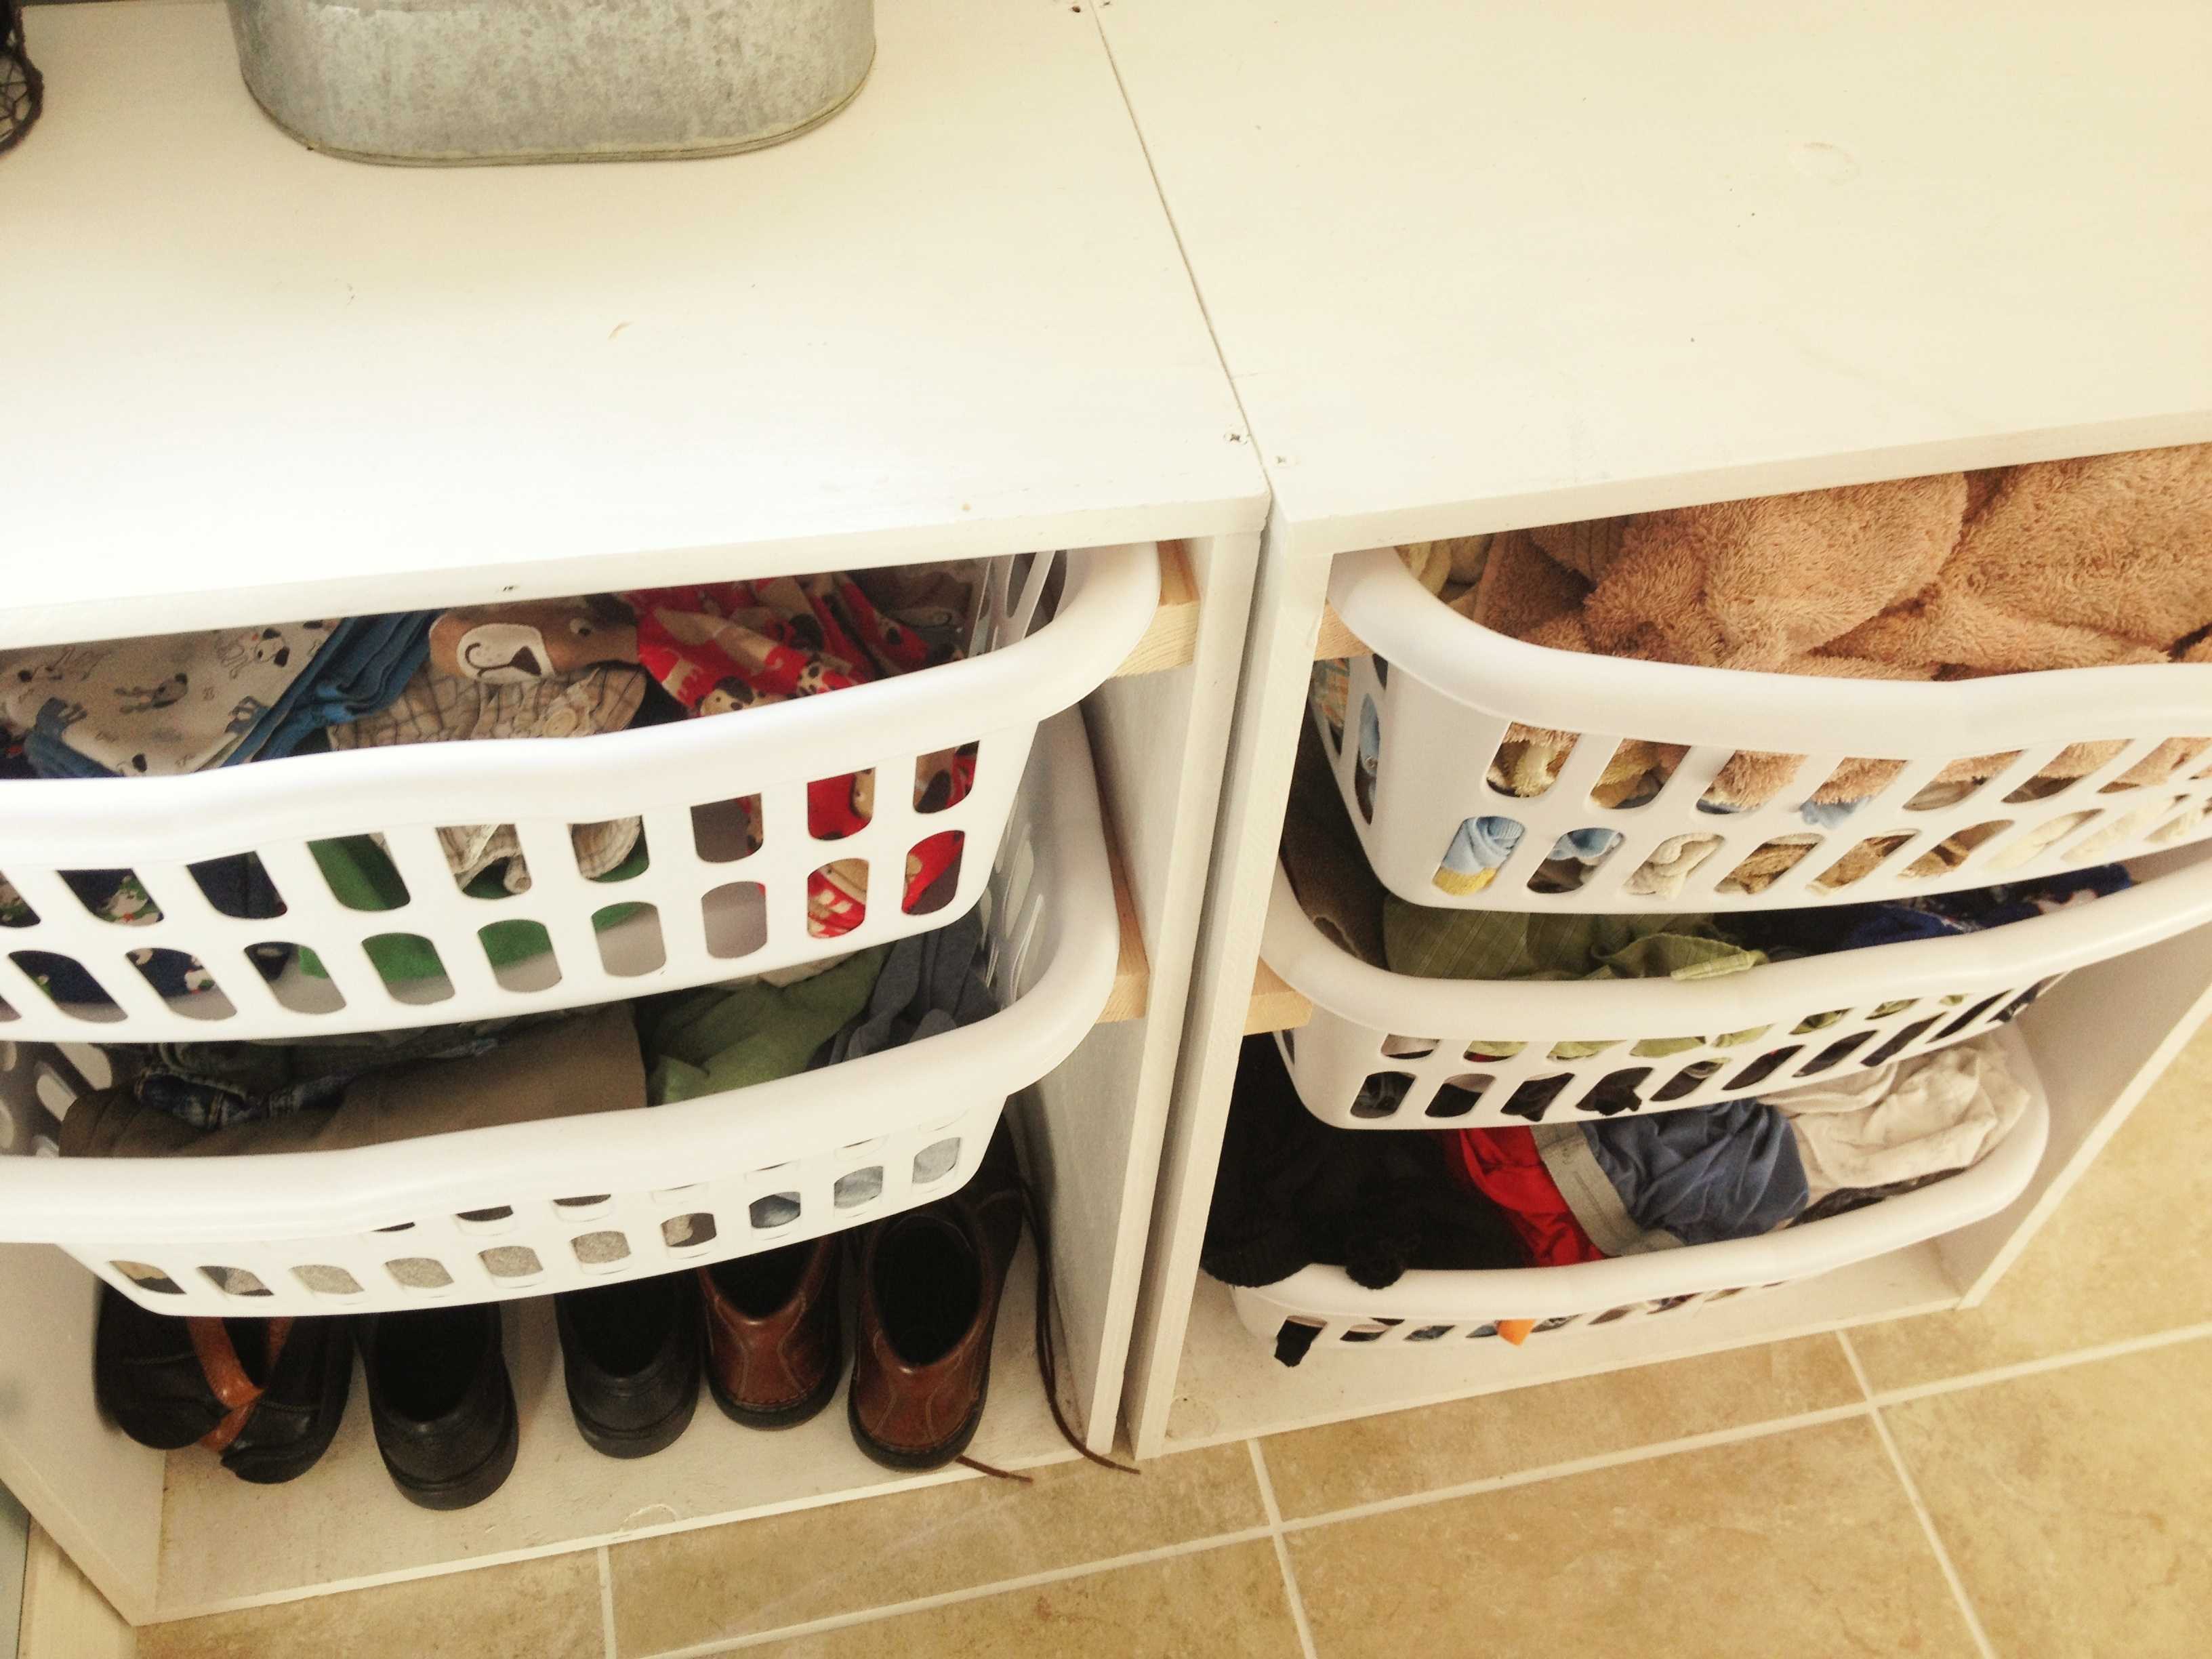 Clean folded laundry on the left sorted by room in the house, dirty on the right pre-sorted by color